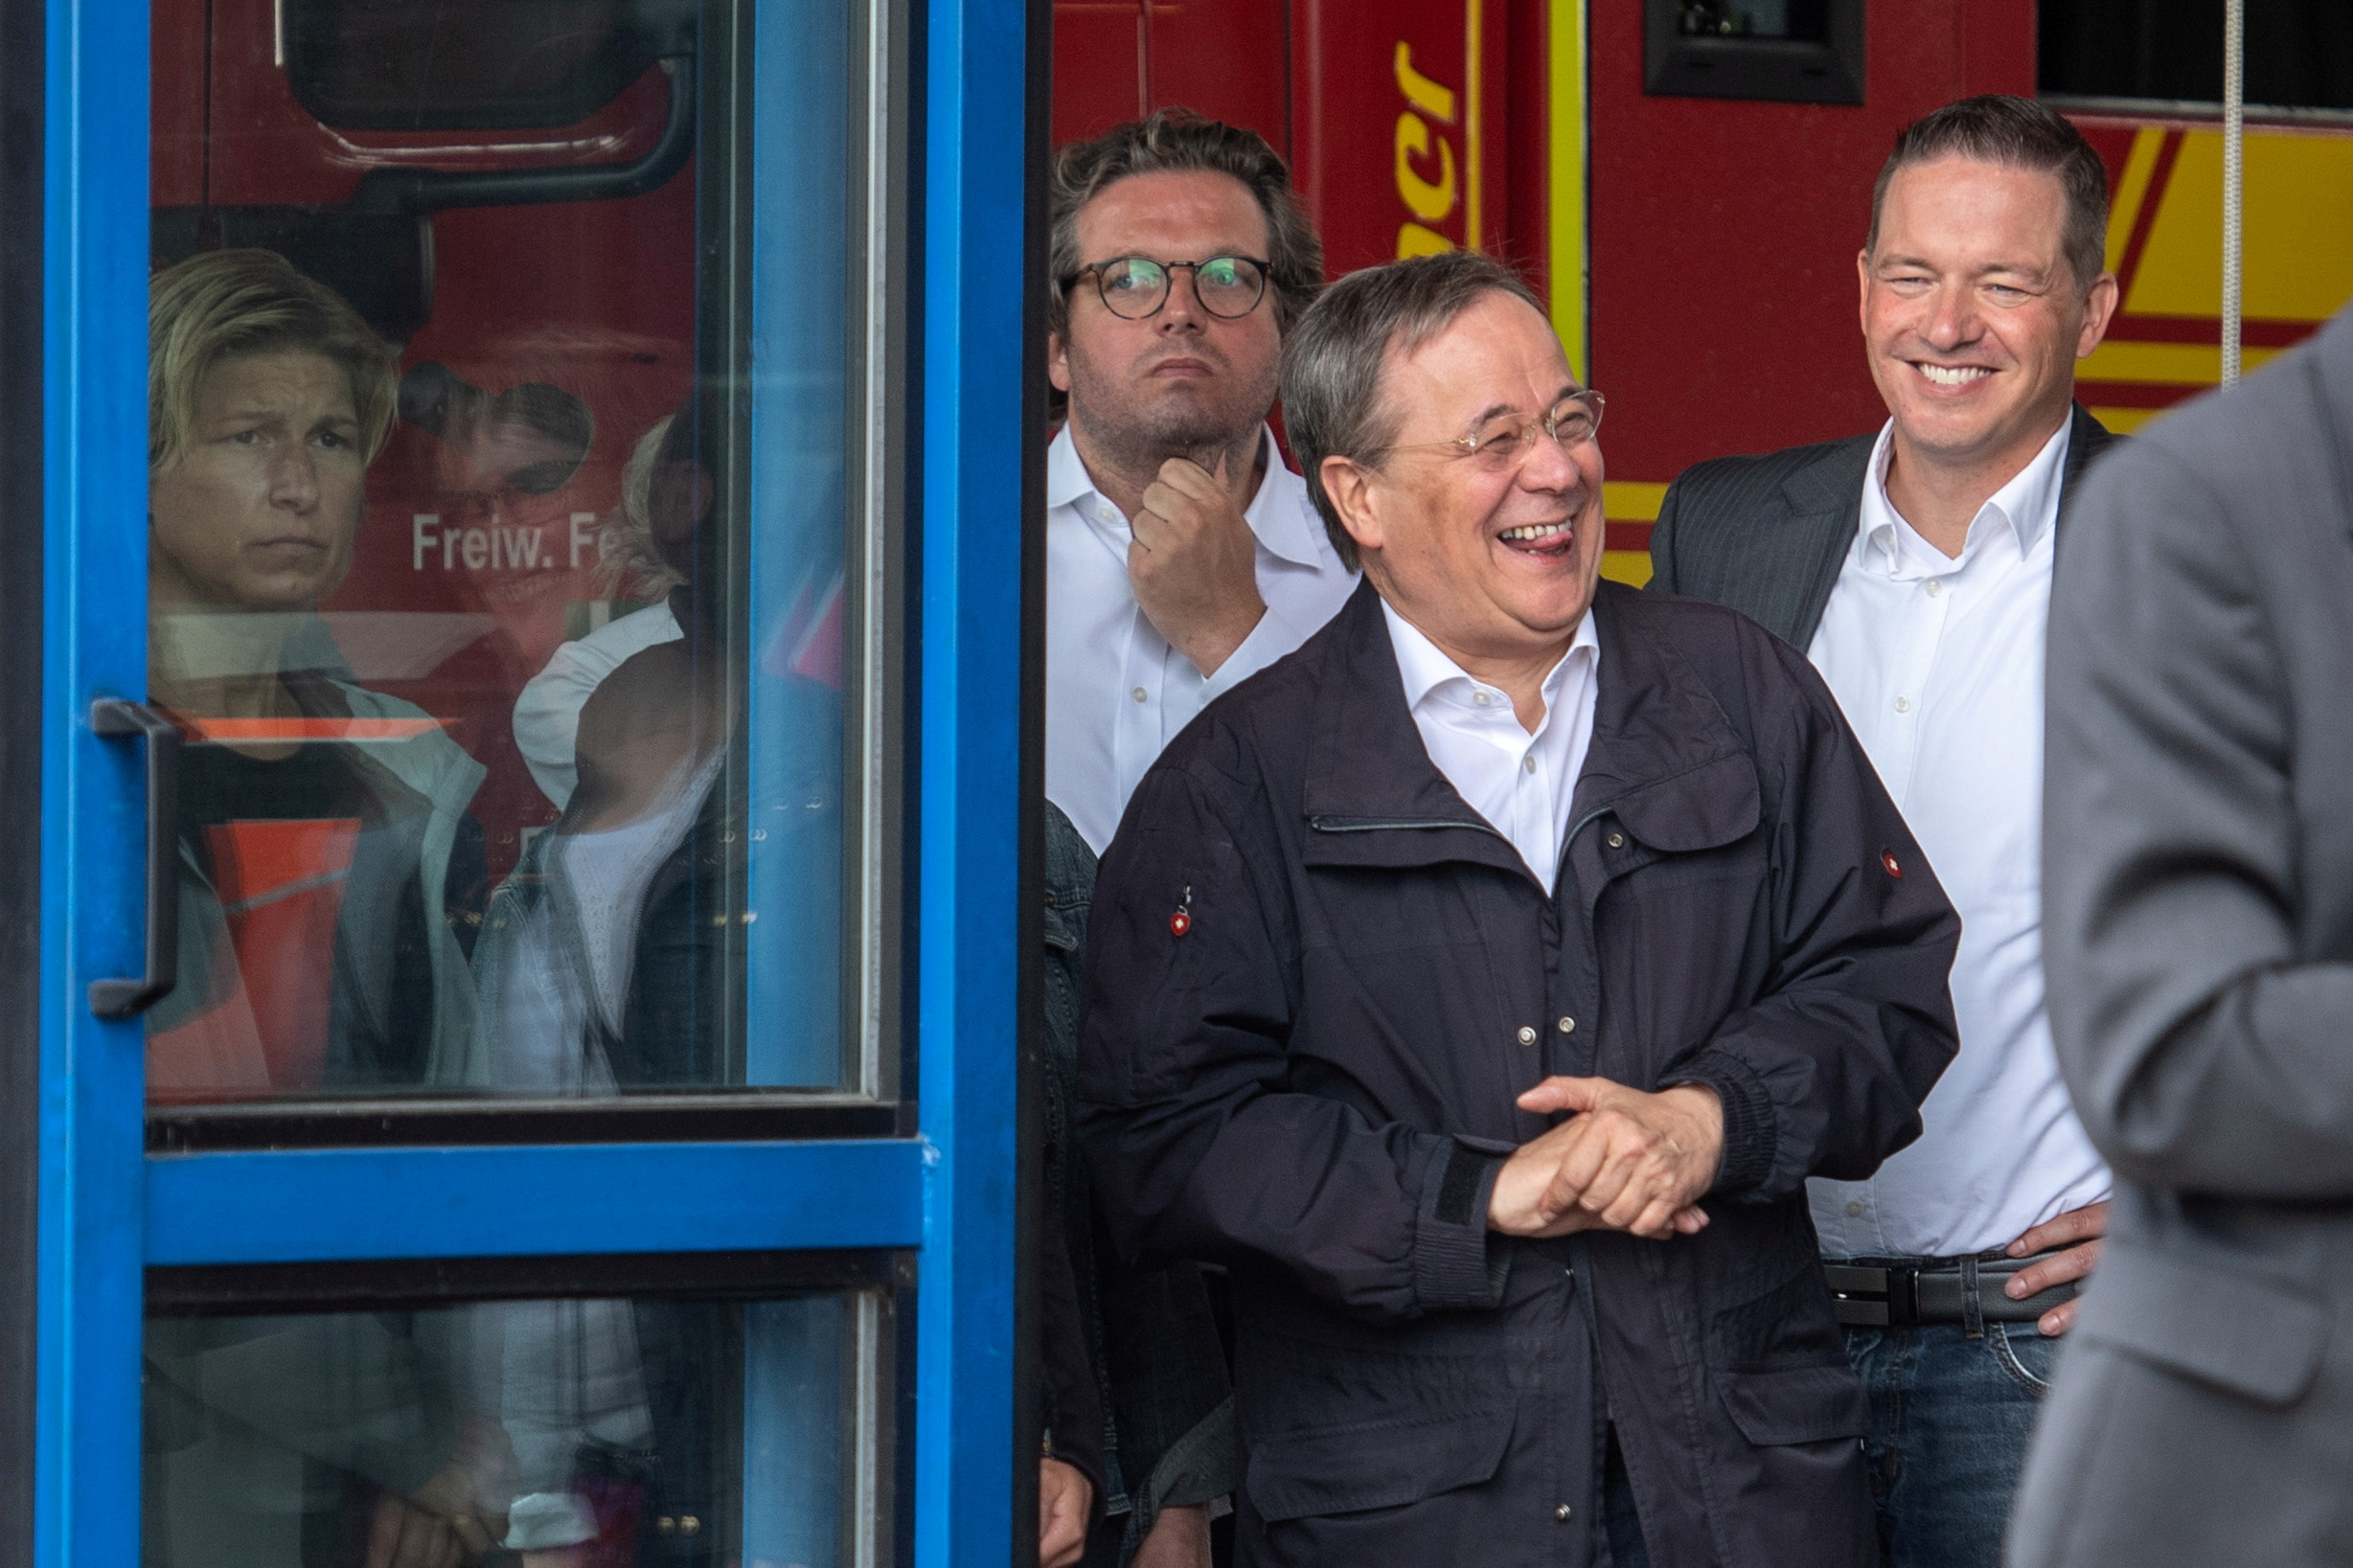 DOCUMENT DATE:July 18, 2021CDU leader and North Rhine-Westphalia's State Premier Armin Laschet laughs as the German president (unseen) delivers a speech during their visit to flood-hit Erftstadt, Germany July 17, 2021. Picture taken July 17, 2021 Marius Becker/Pool via REUTERS